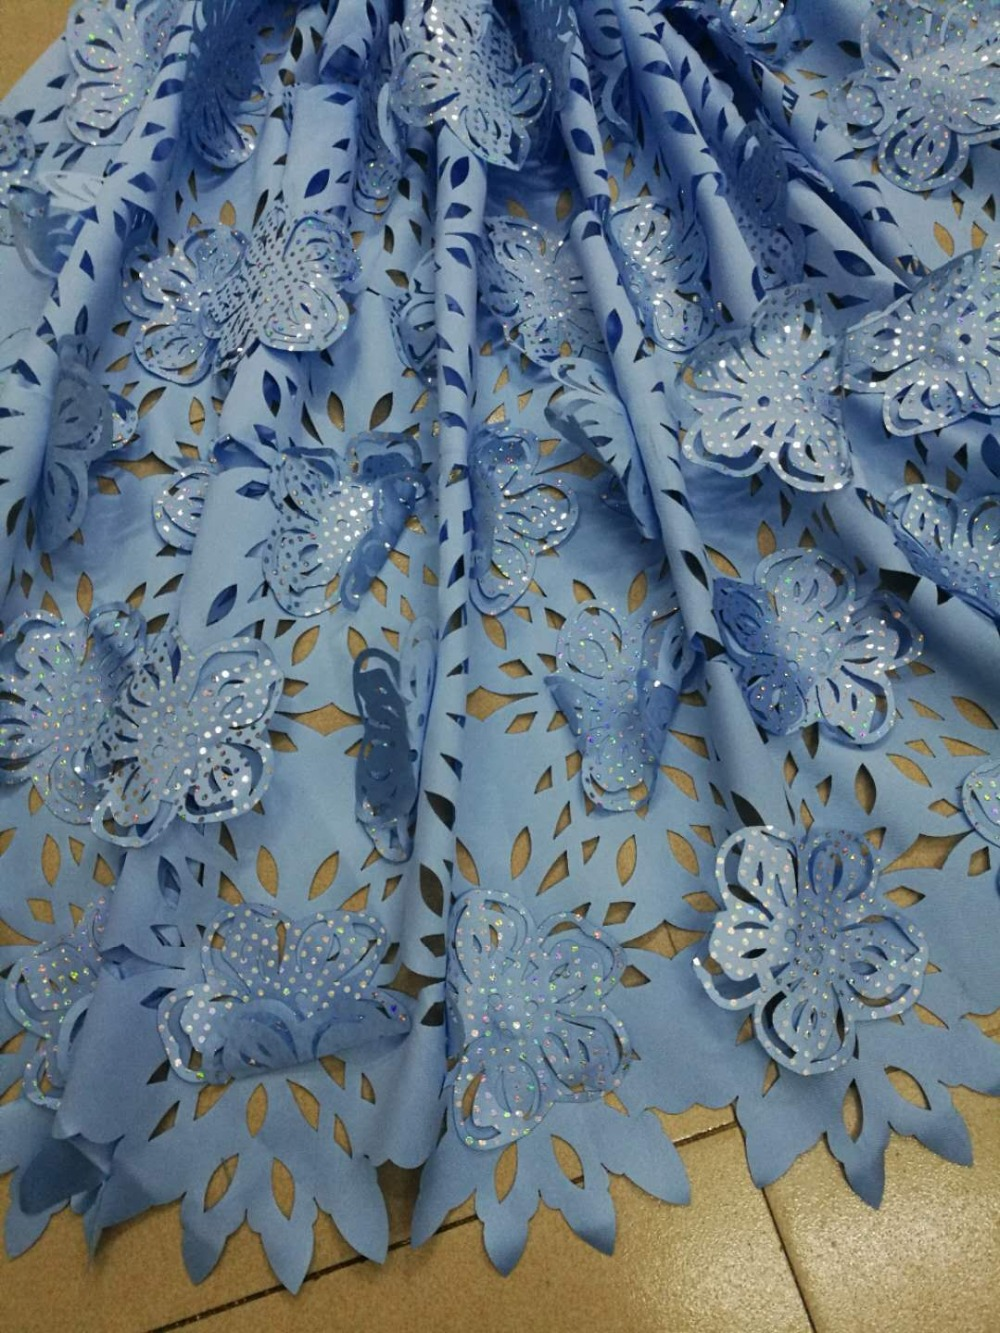 African Lace Fabric 2019 High Quality Lace French Burning flower 3D Fabric Stones Nigerian Tulle Lace Fabrics For Woman Dress